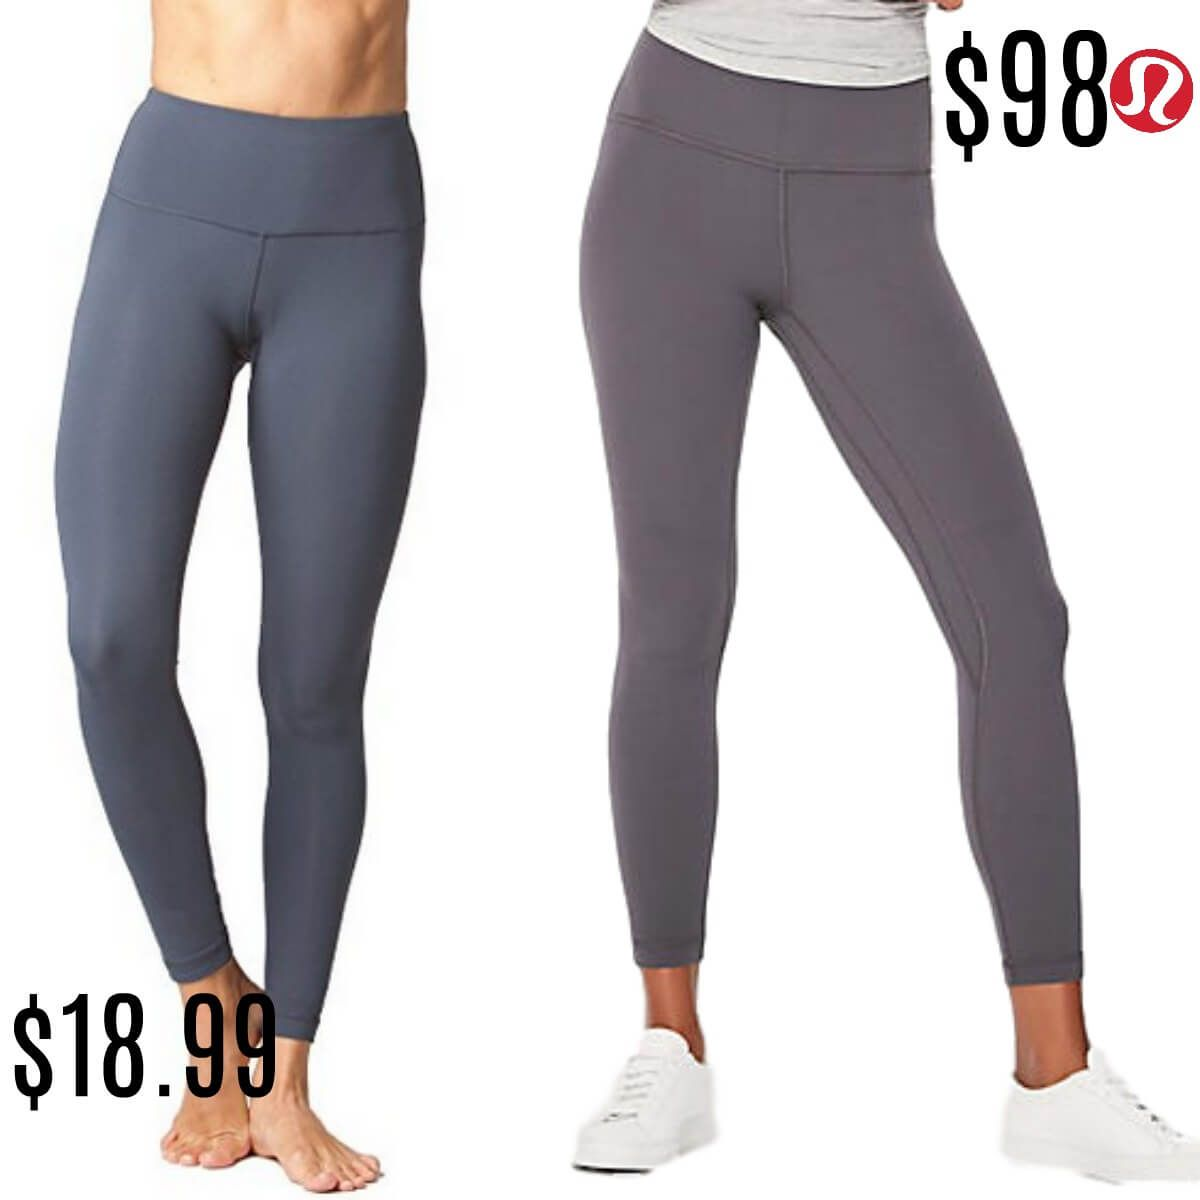 LuluLemon Dupes That Will Shock You, They Are That Good